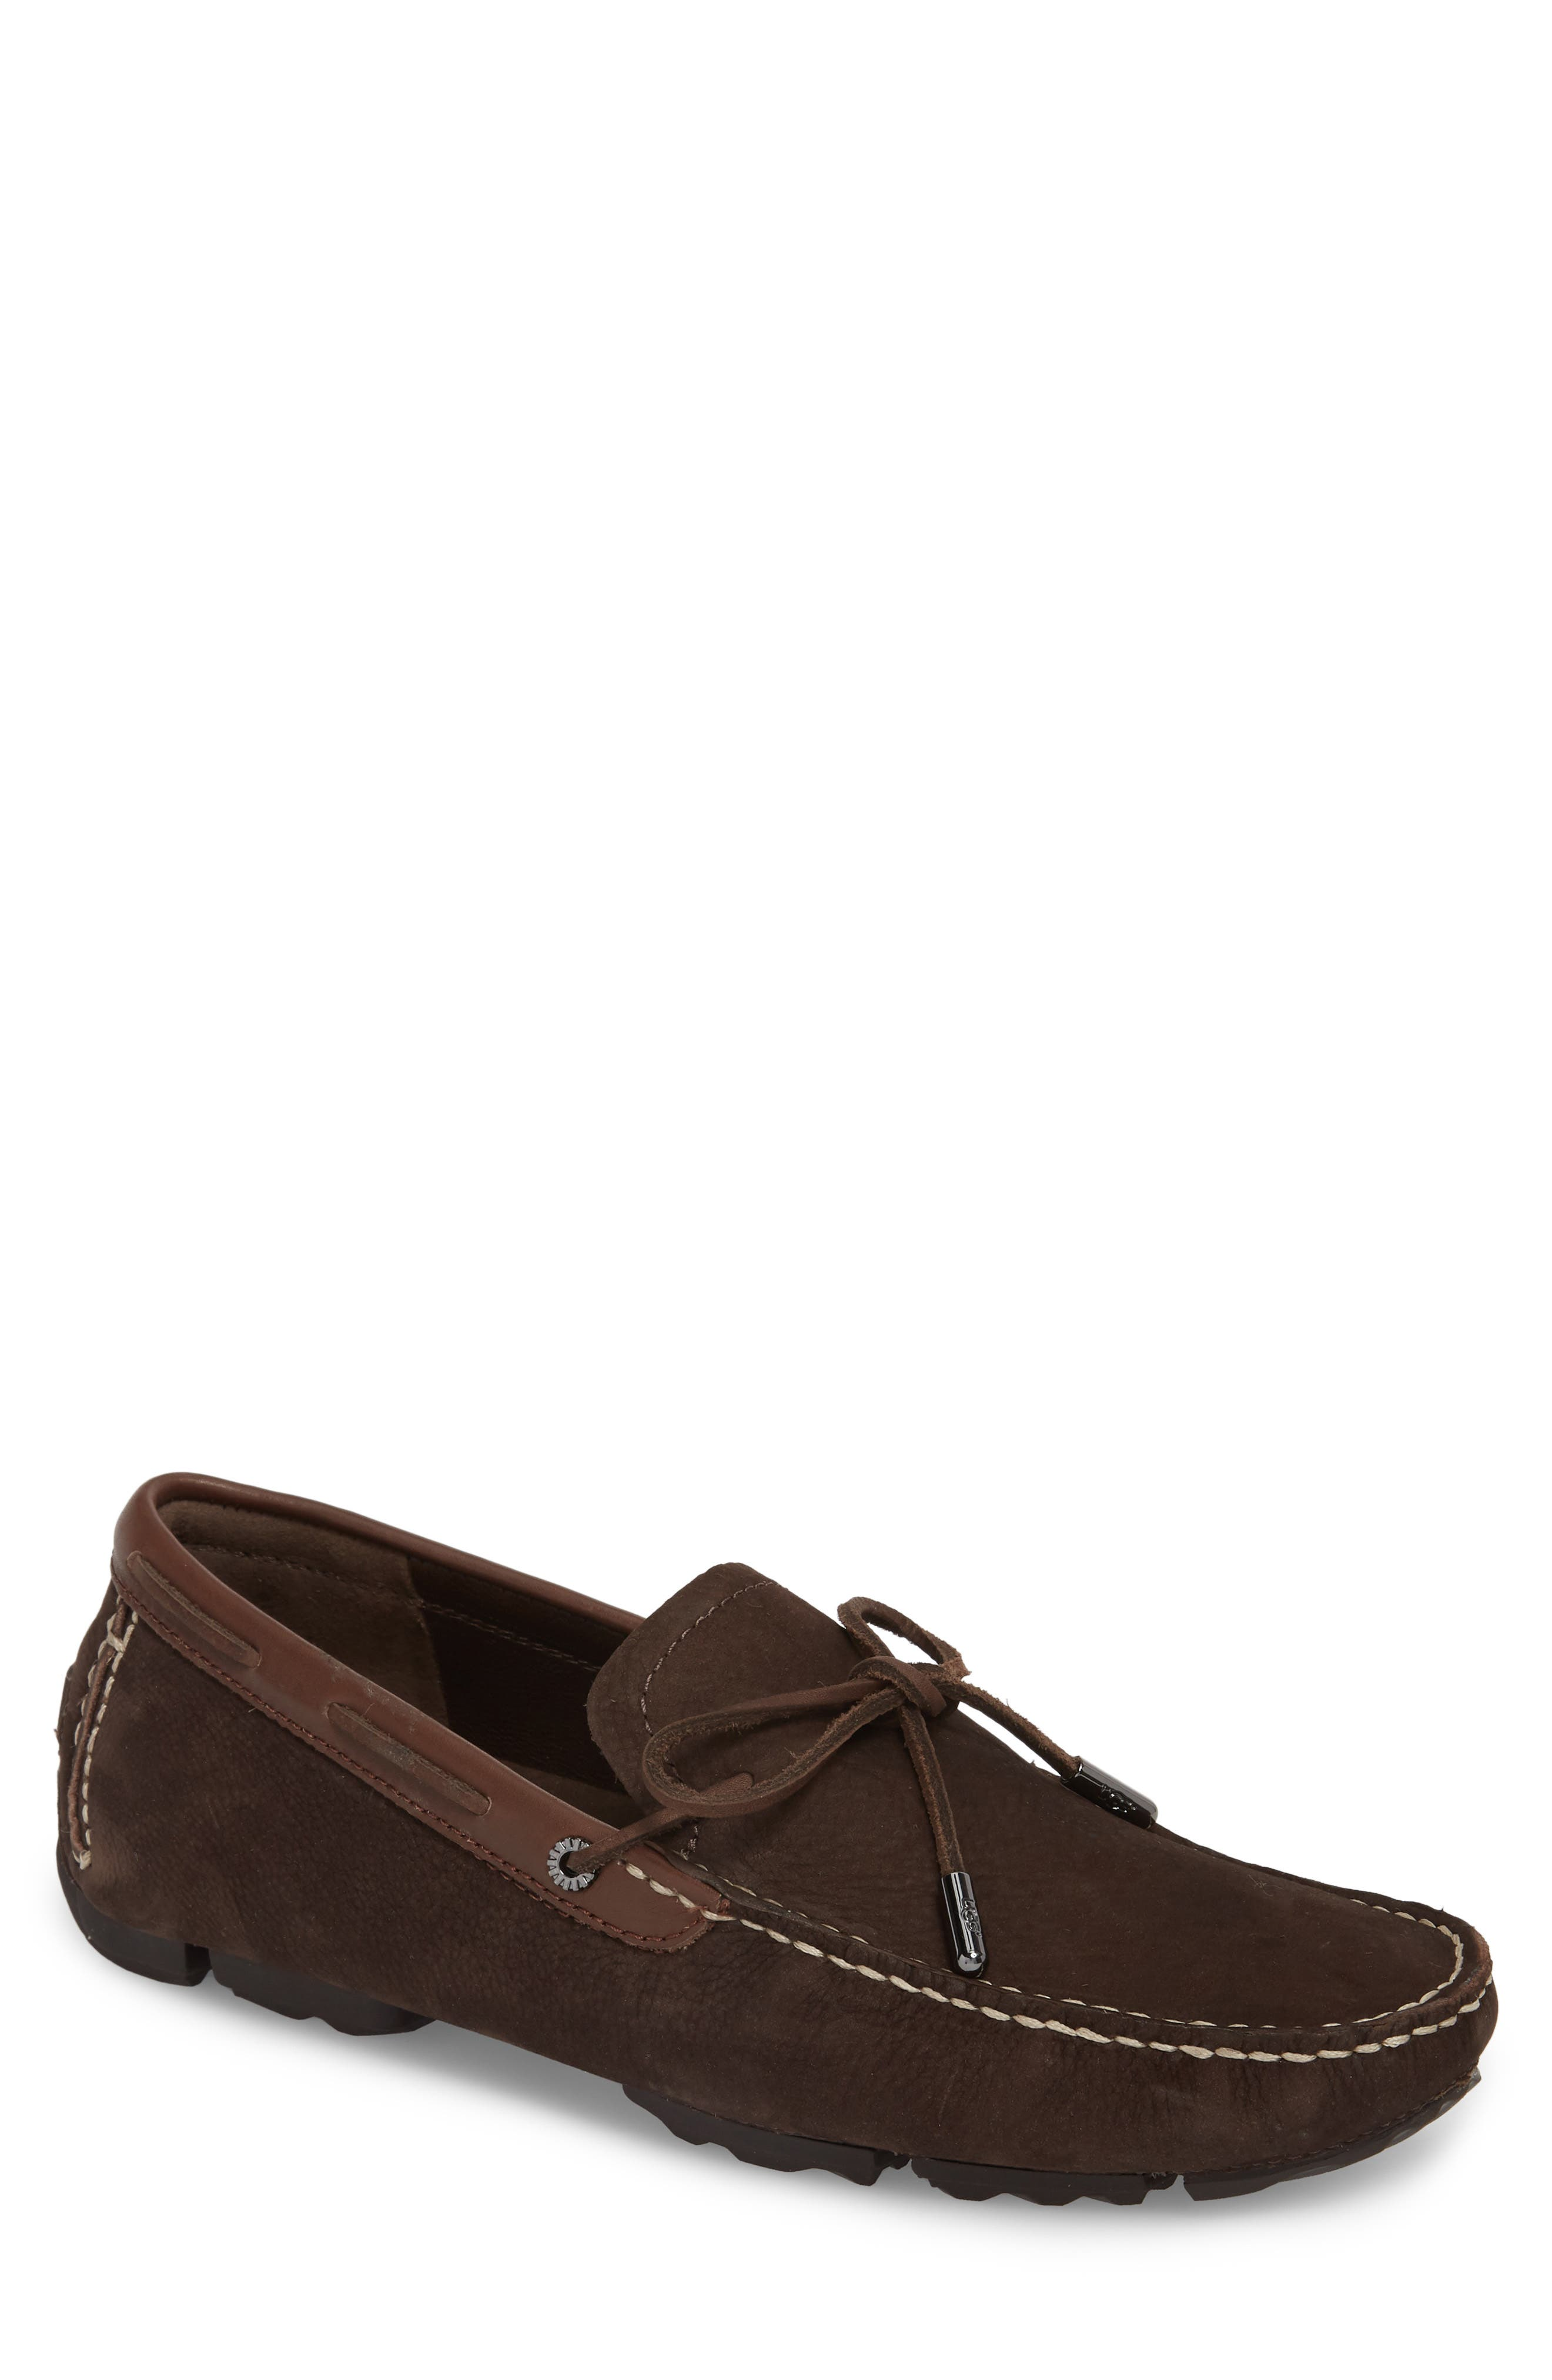 Bel Air Driving Moccasin,                             Main thumbnail 1, color,                             STOUT LEATHER